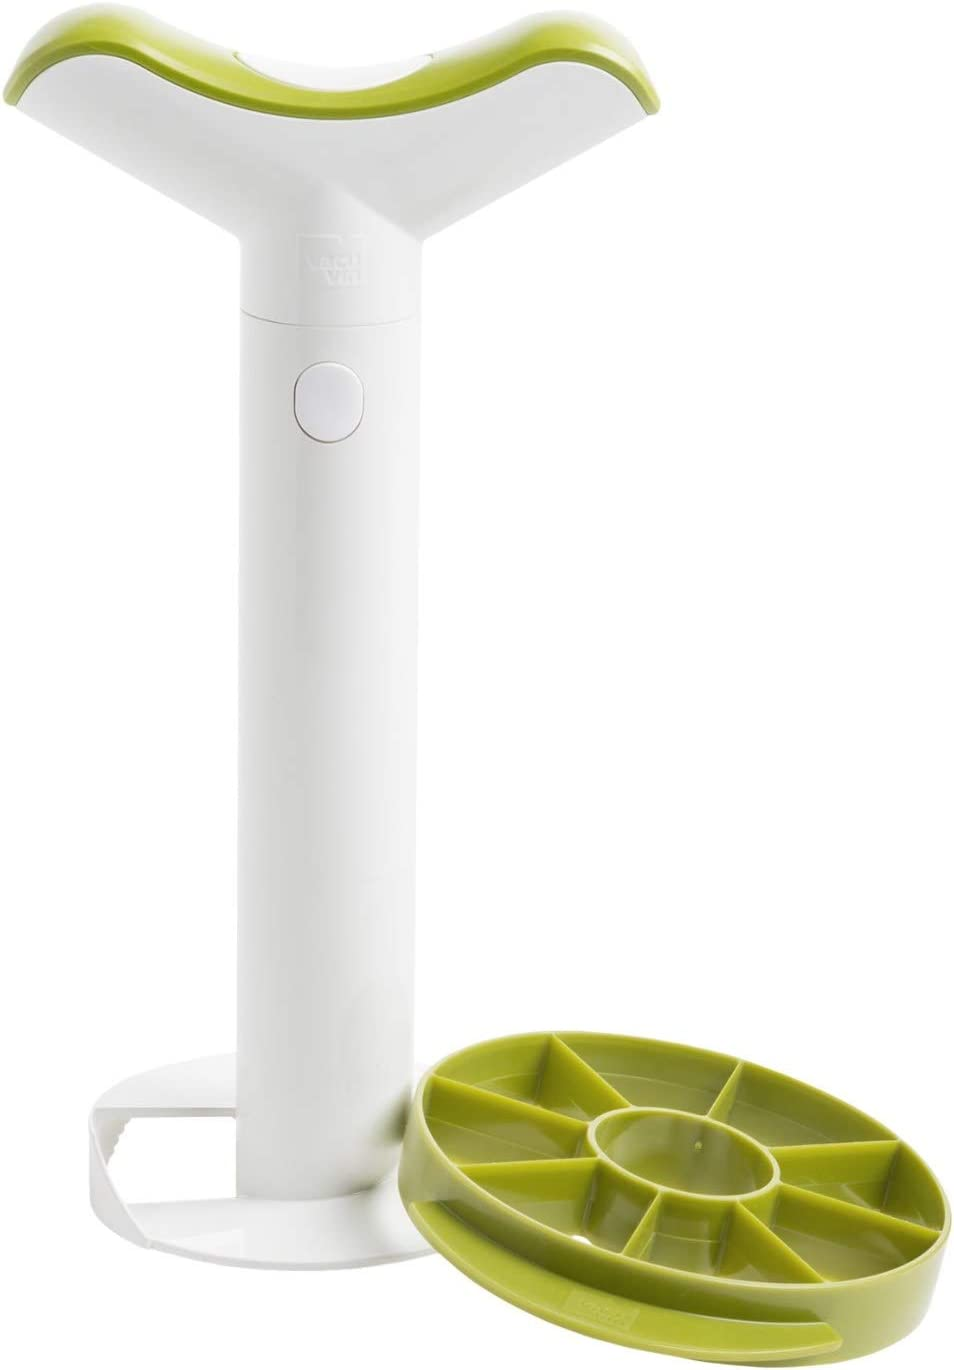 Tomorrow's Kitchen4-in-1 Pineapple Peeler, Corer, Slicer and Wedger (in Box) - White and Green